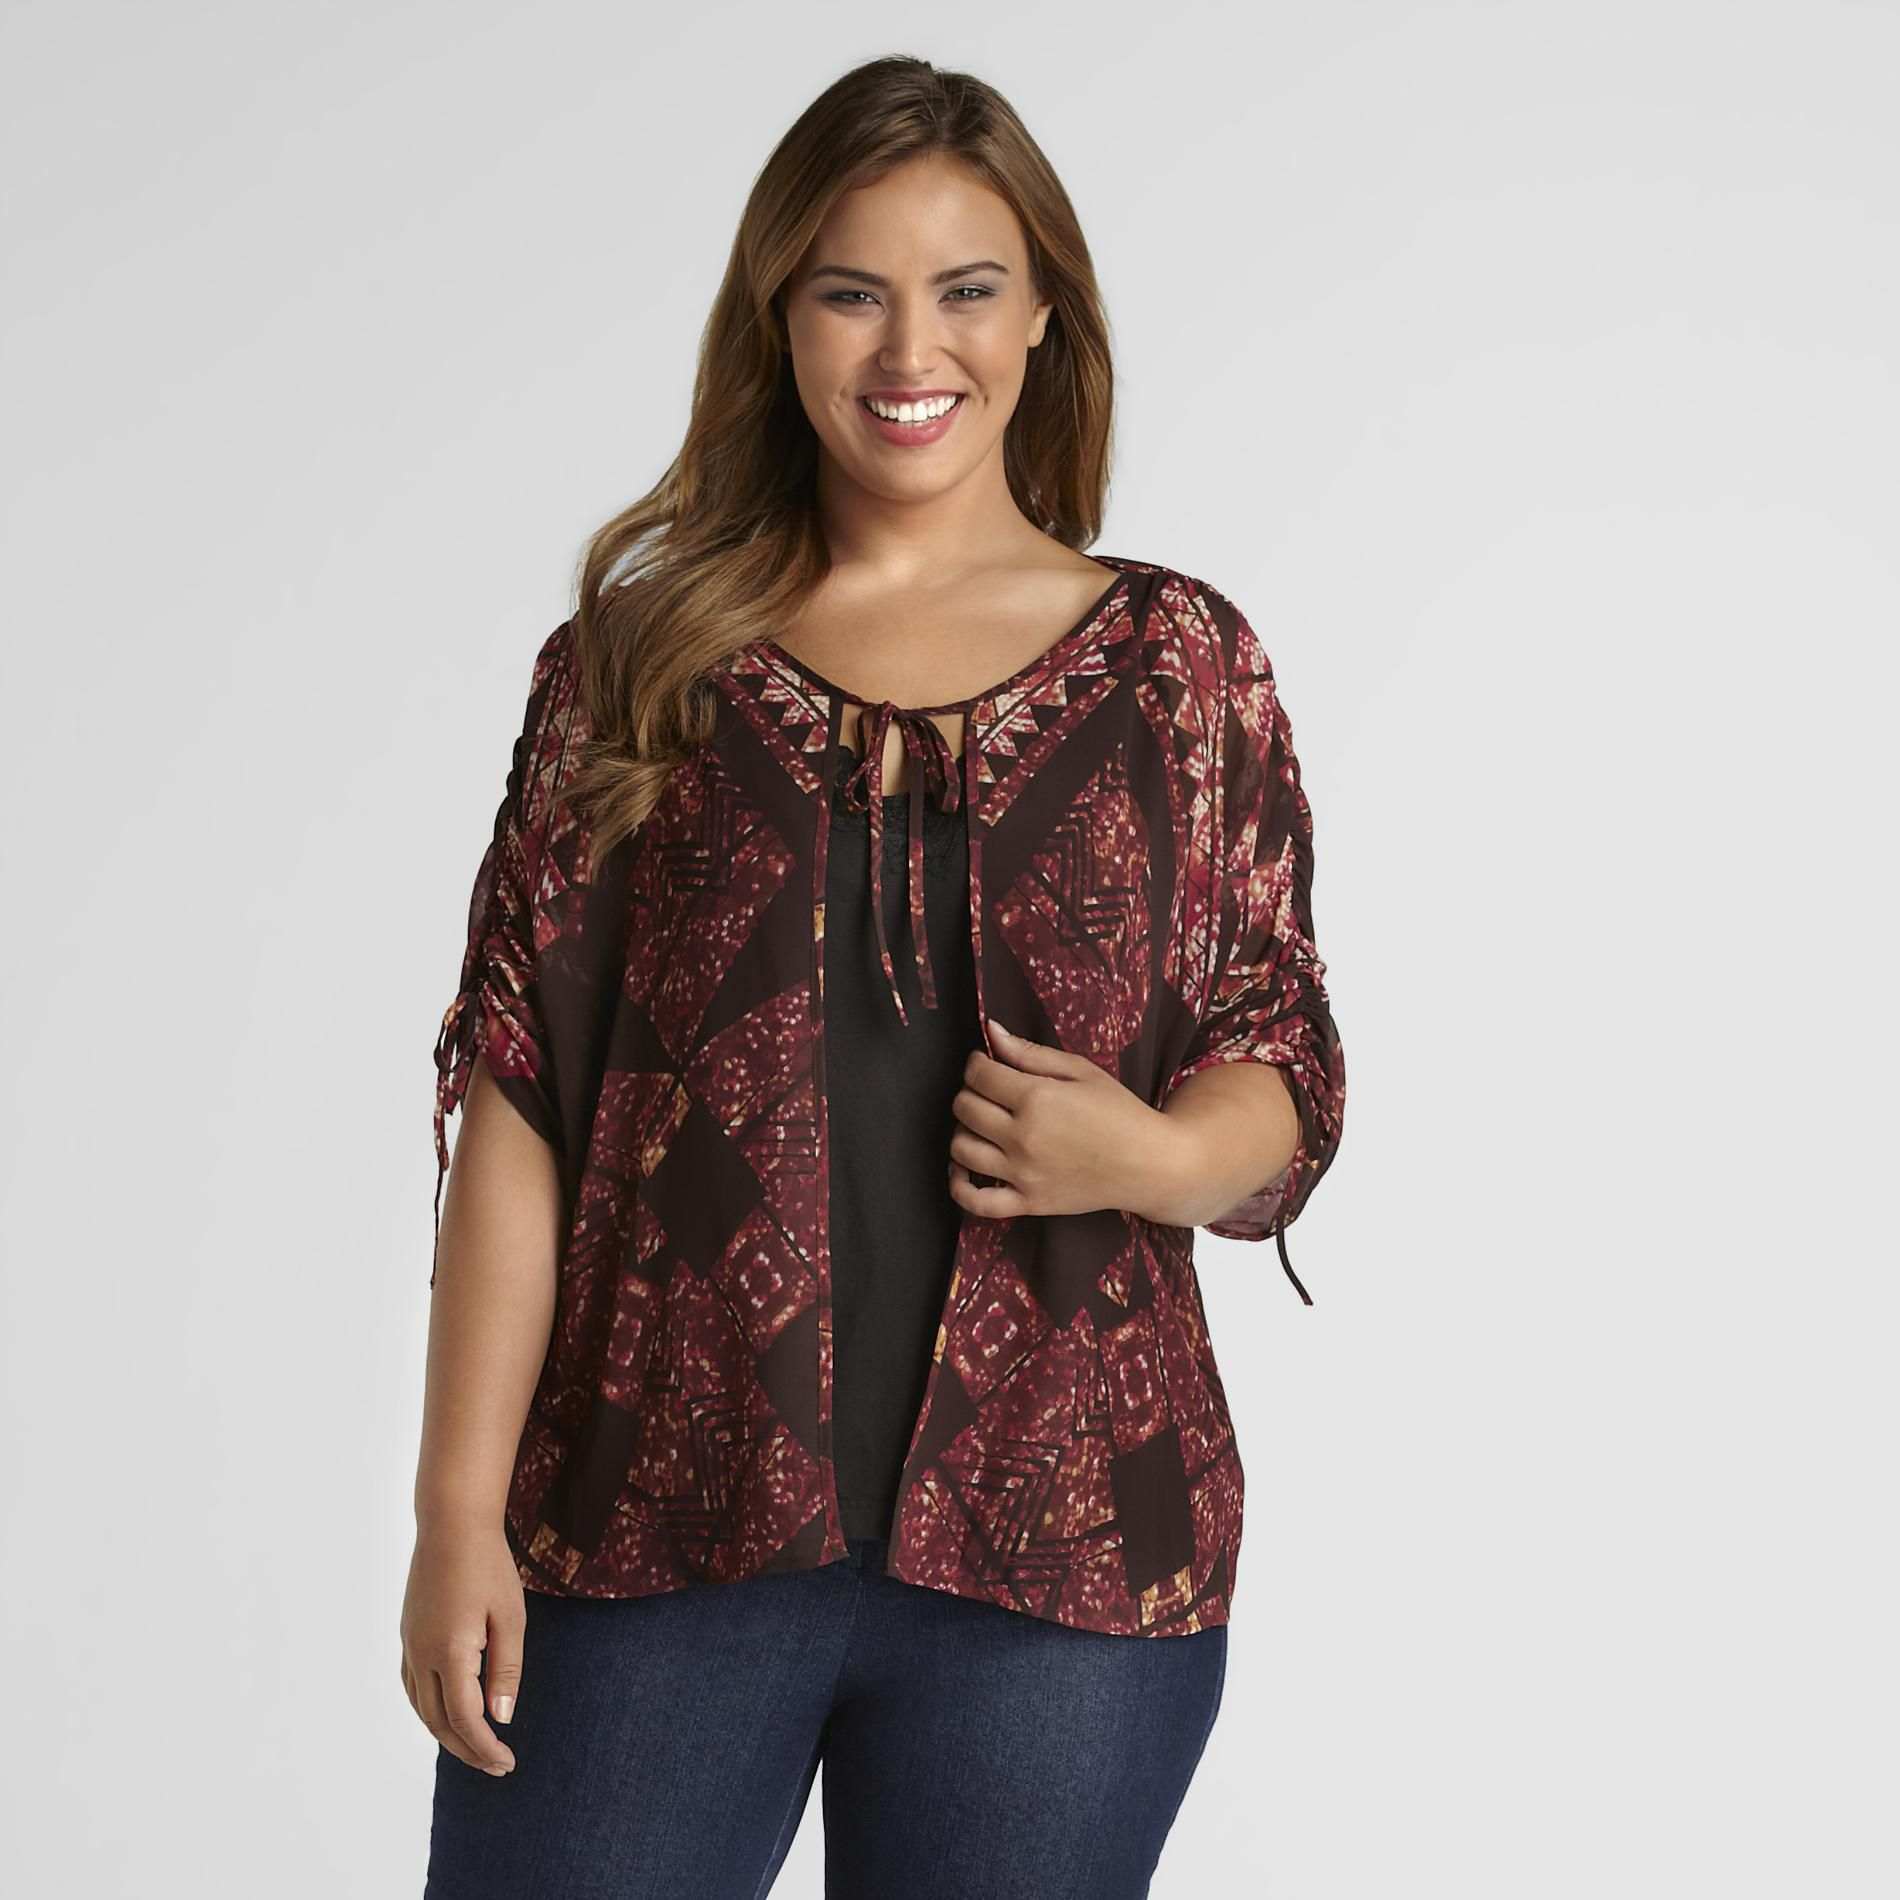 Love Your Style, Love Your Size Women's Plus Flyaway Blouse - Geometric Print